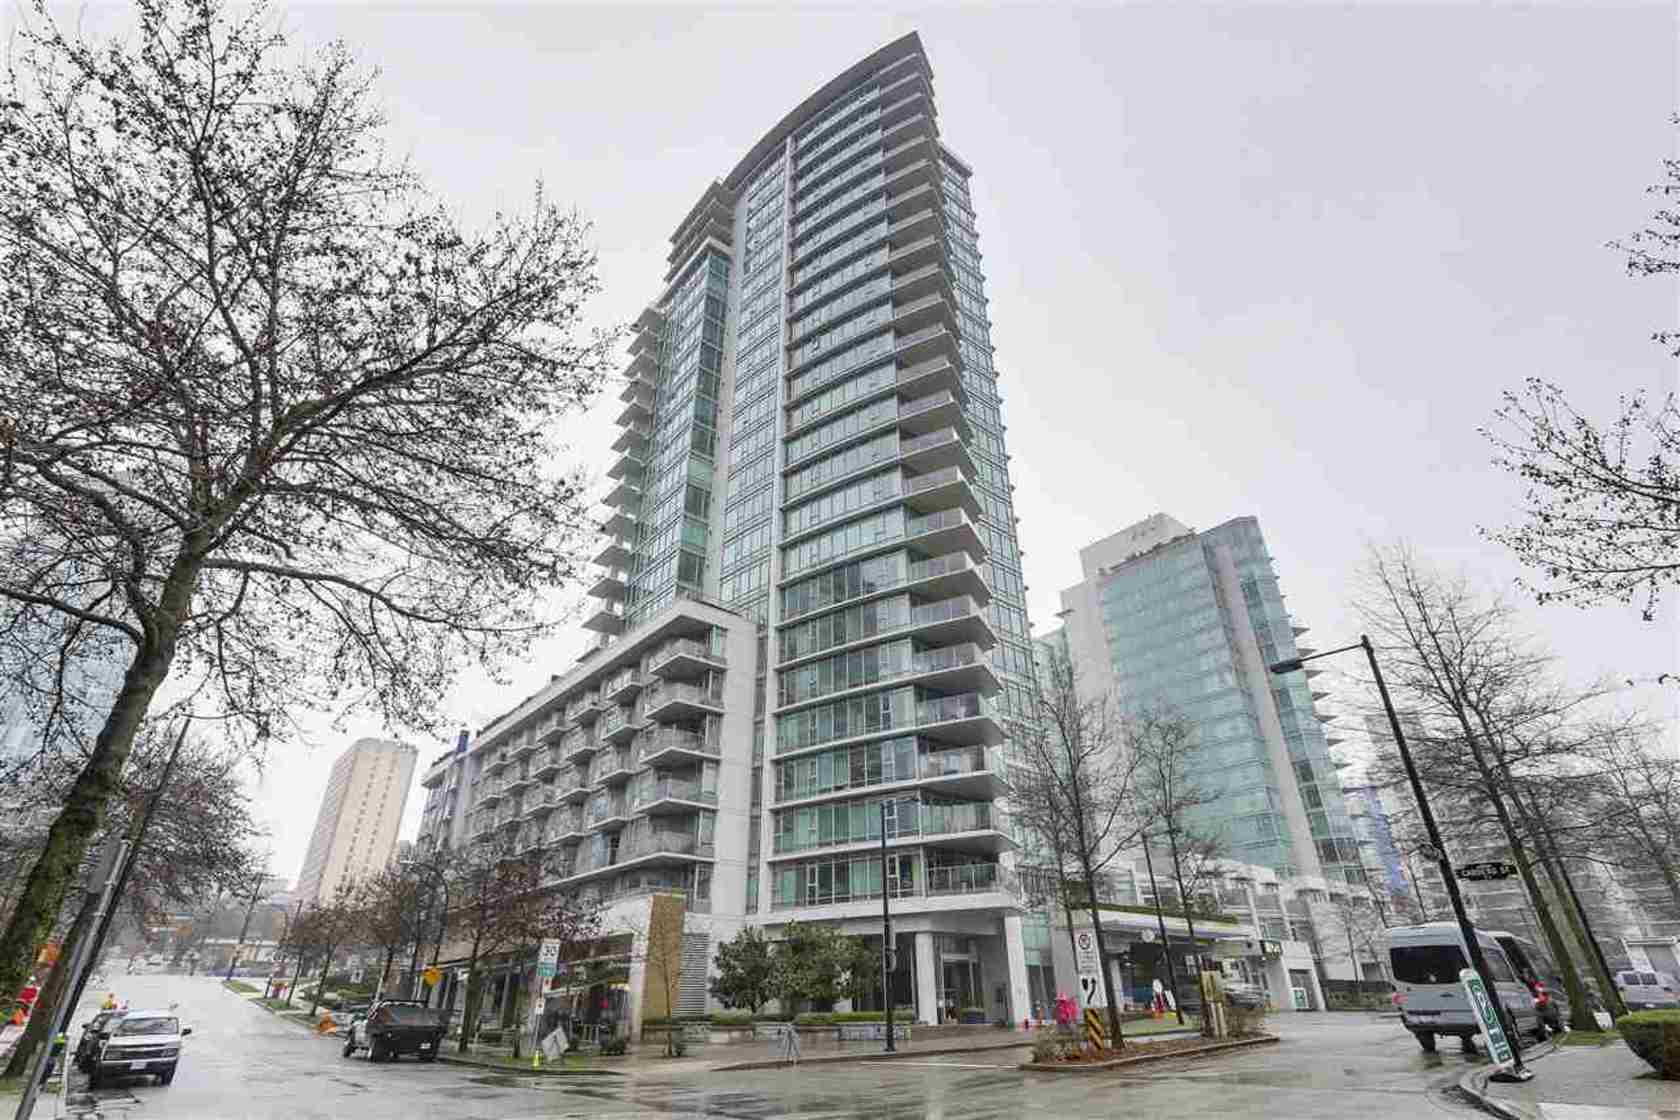 1616-bayshore-drive-137-28-01 at 201 - 1616 Bayshore, Bayshore Drive (Coal Harbour), Vancouver West